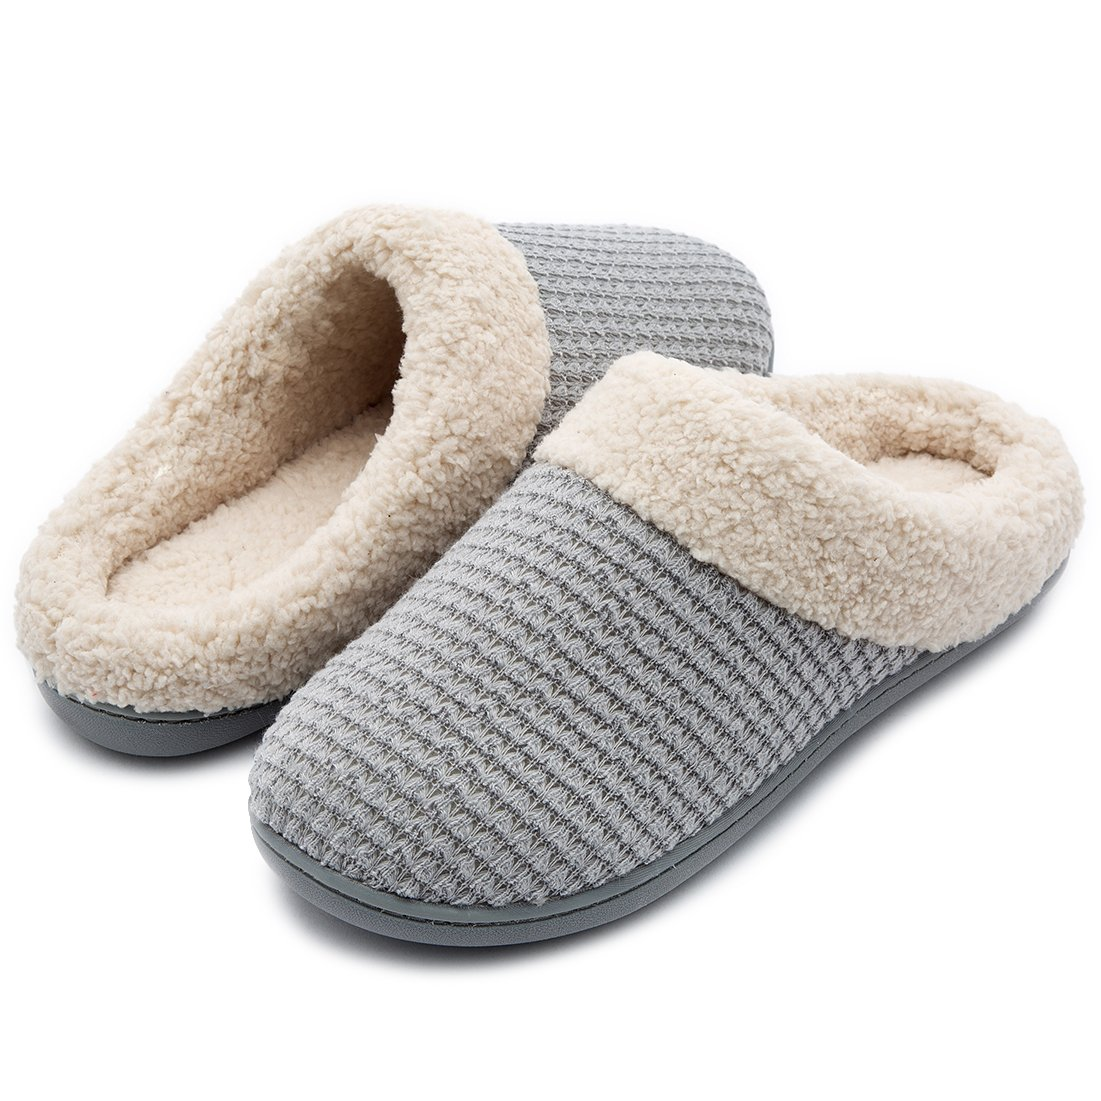 aaa72345120c Womens Comfort Coral Fleece Memory Foam Slippers Fuzzy Plush Lining Slip-on Clog  House Shoes